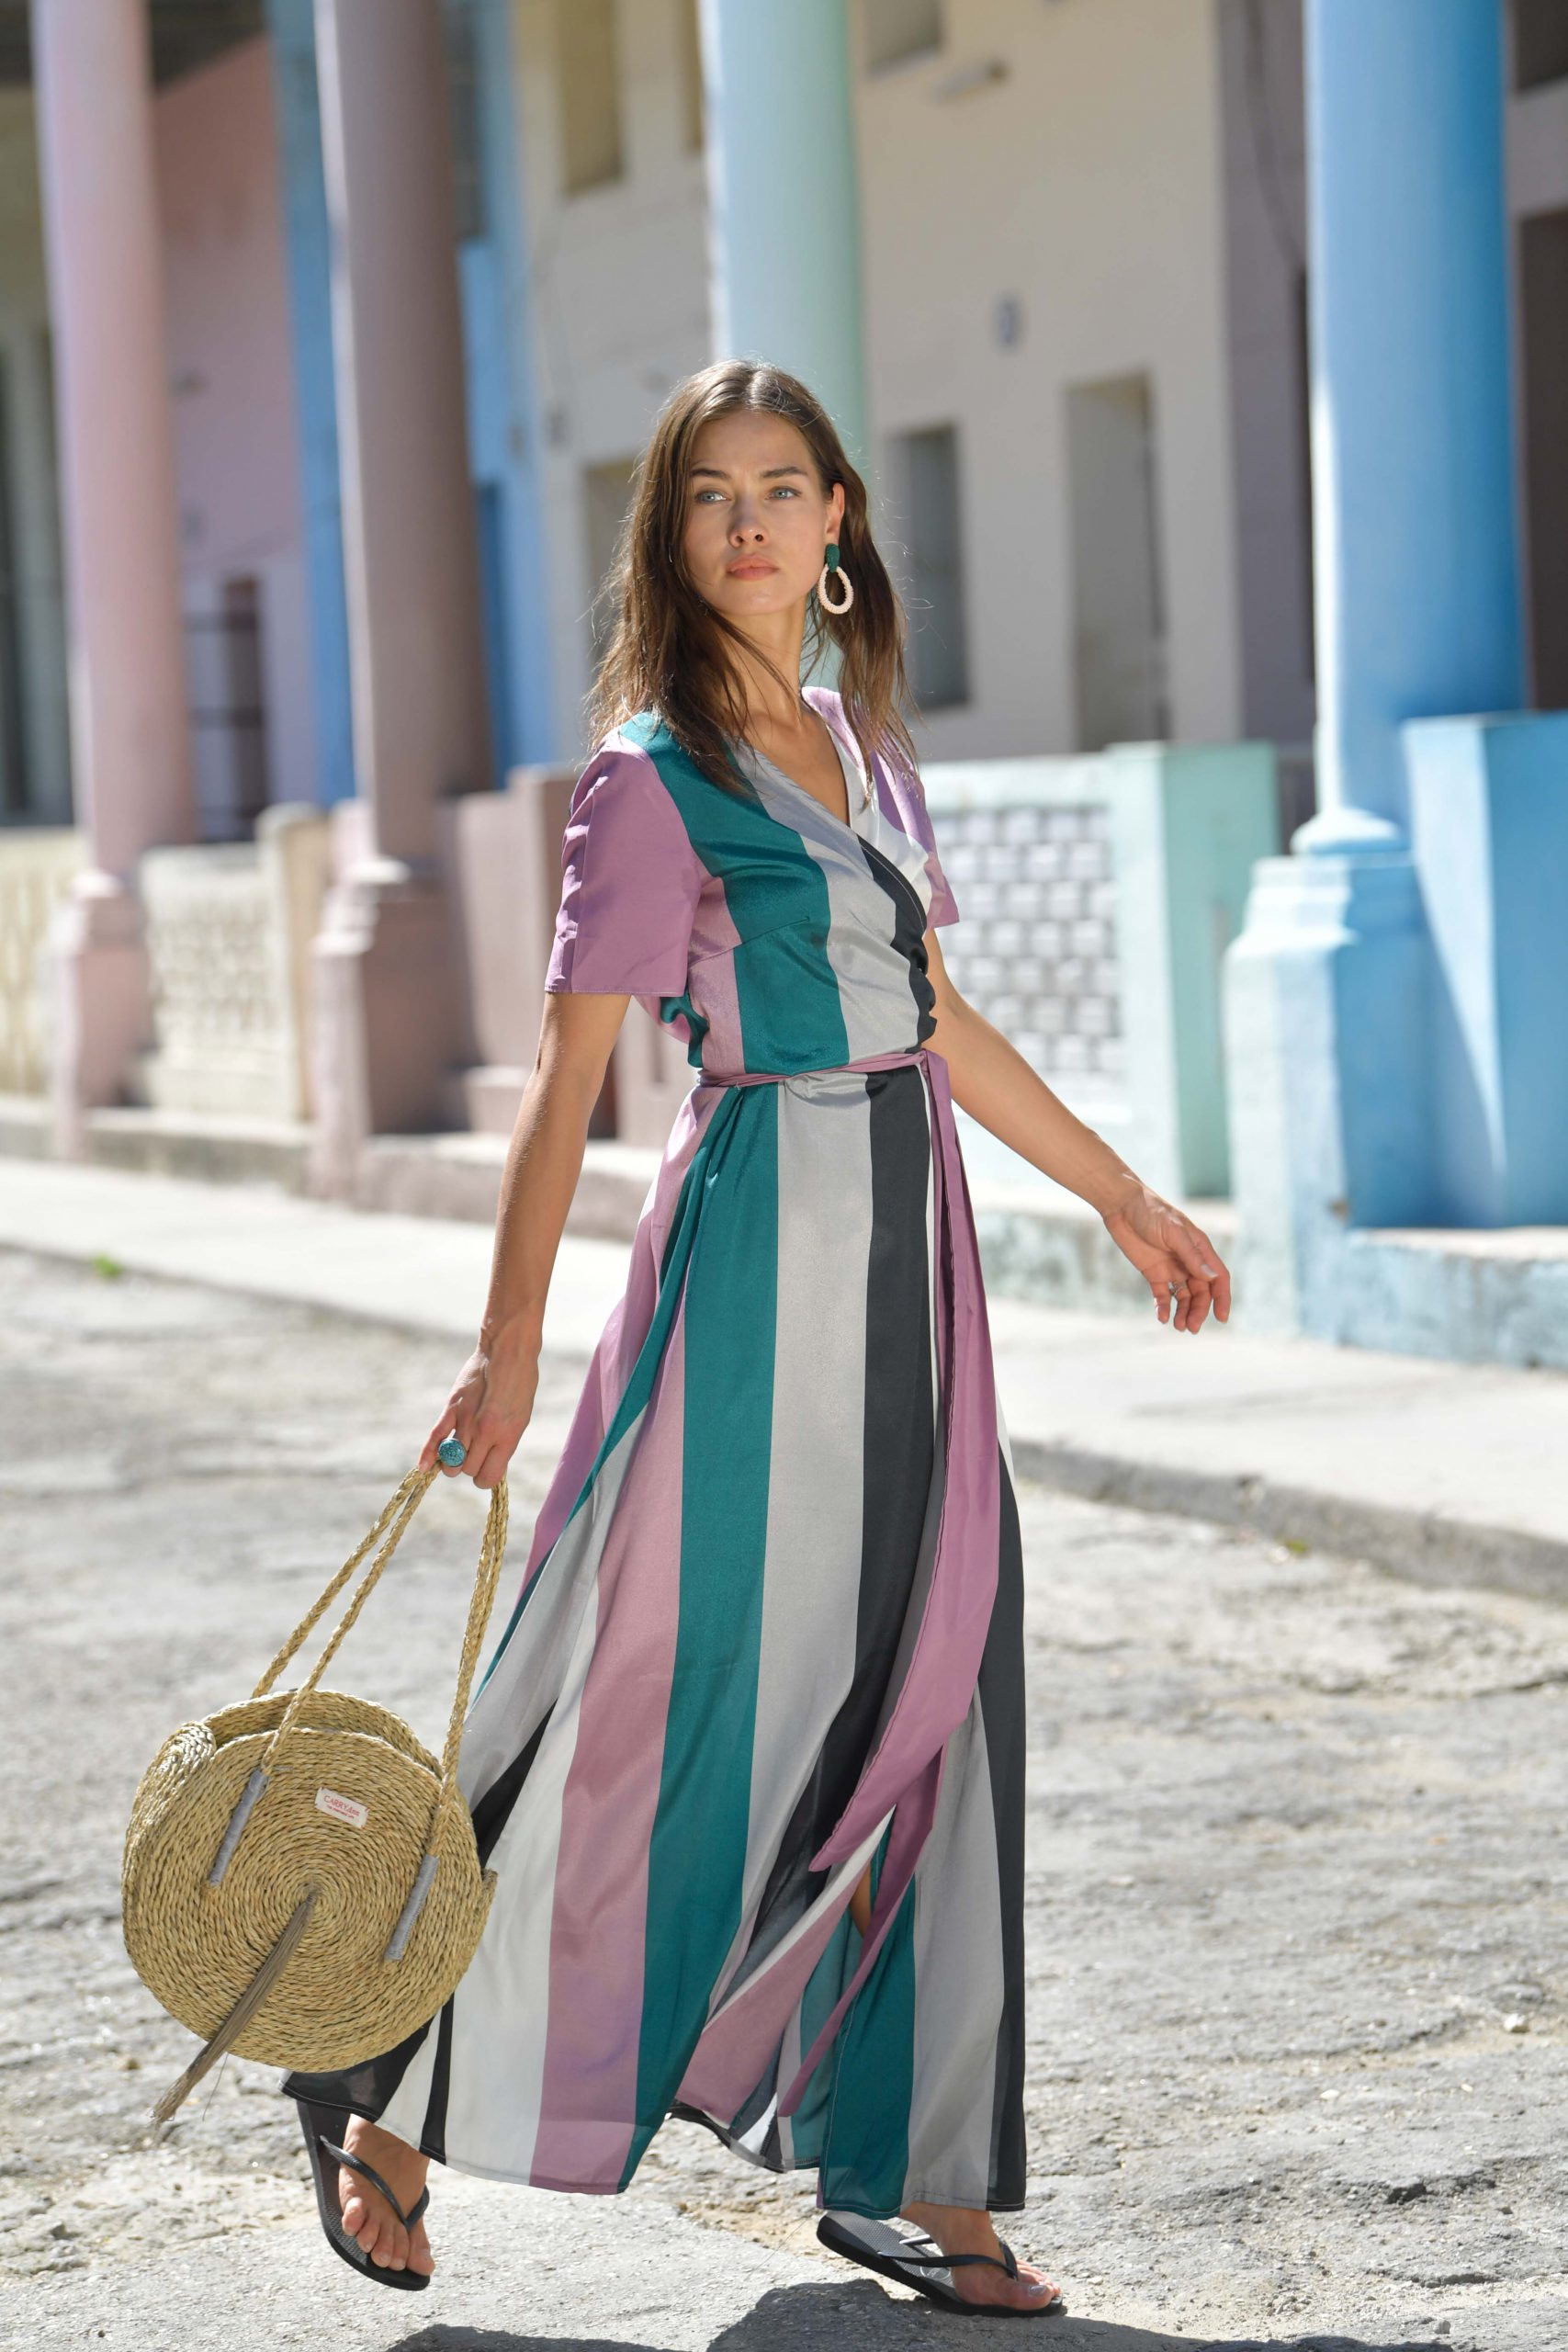 Fashion in Cuba by Peter Mueller Photography 75